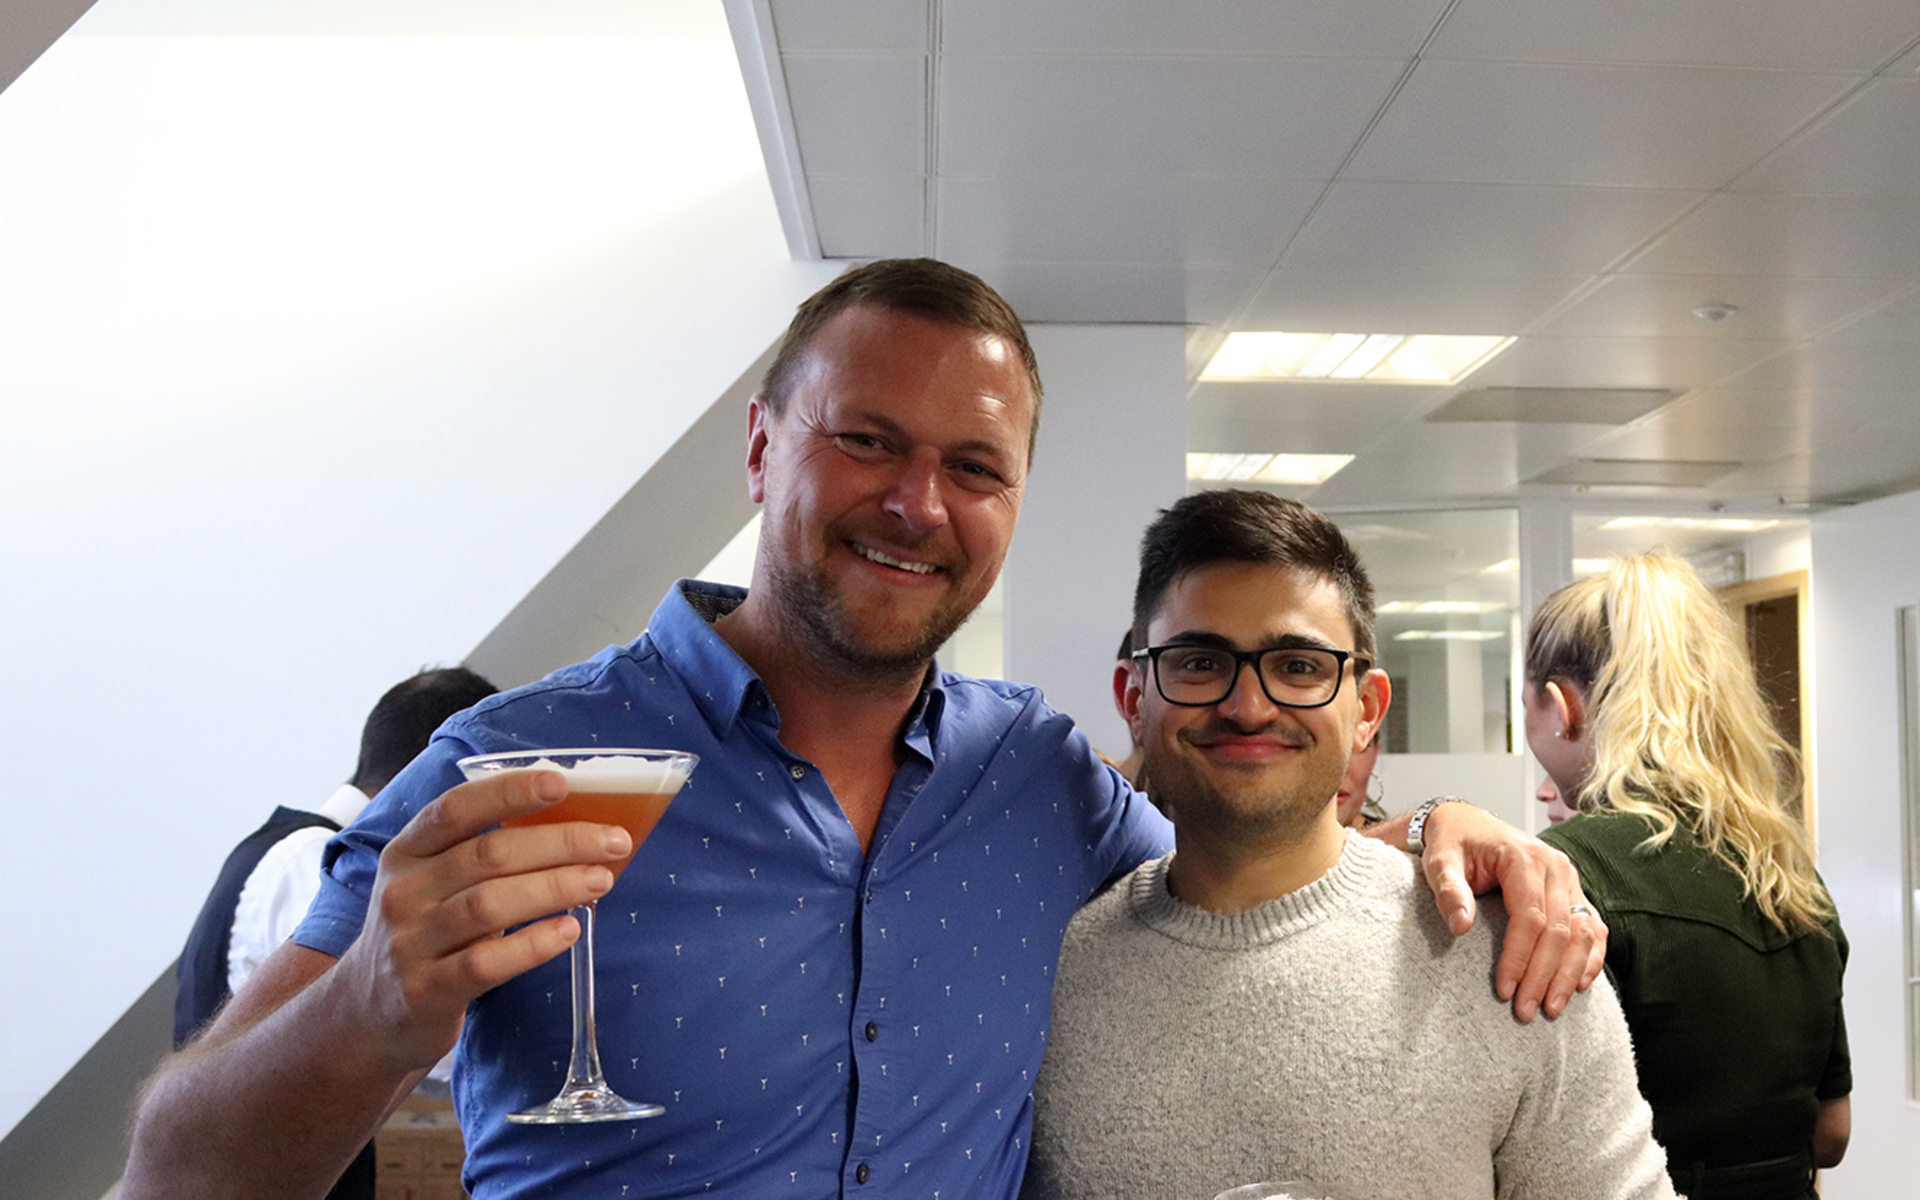 Two men holding cocktails